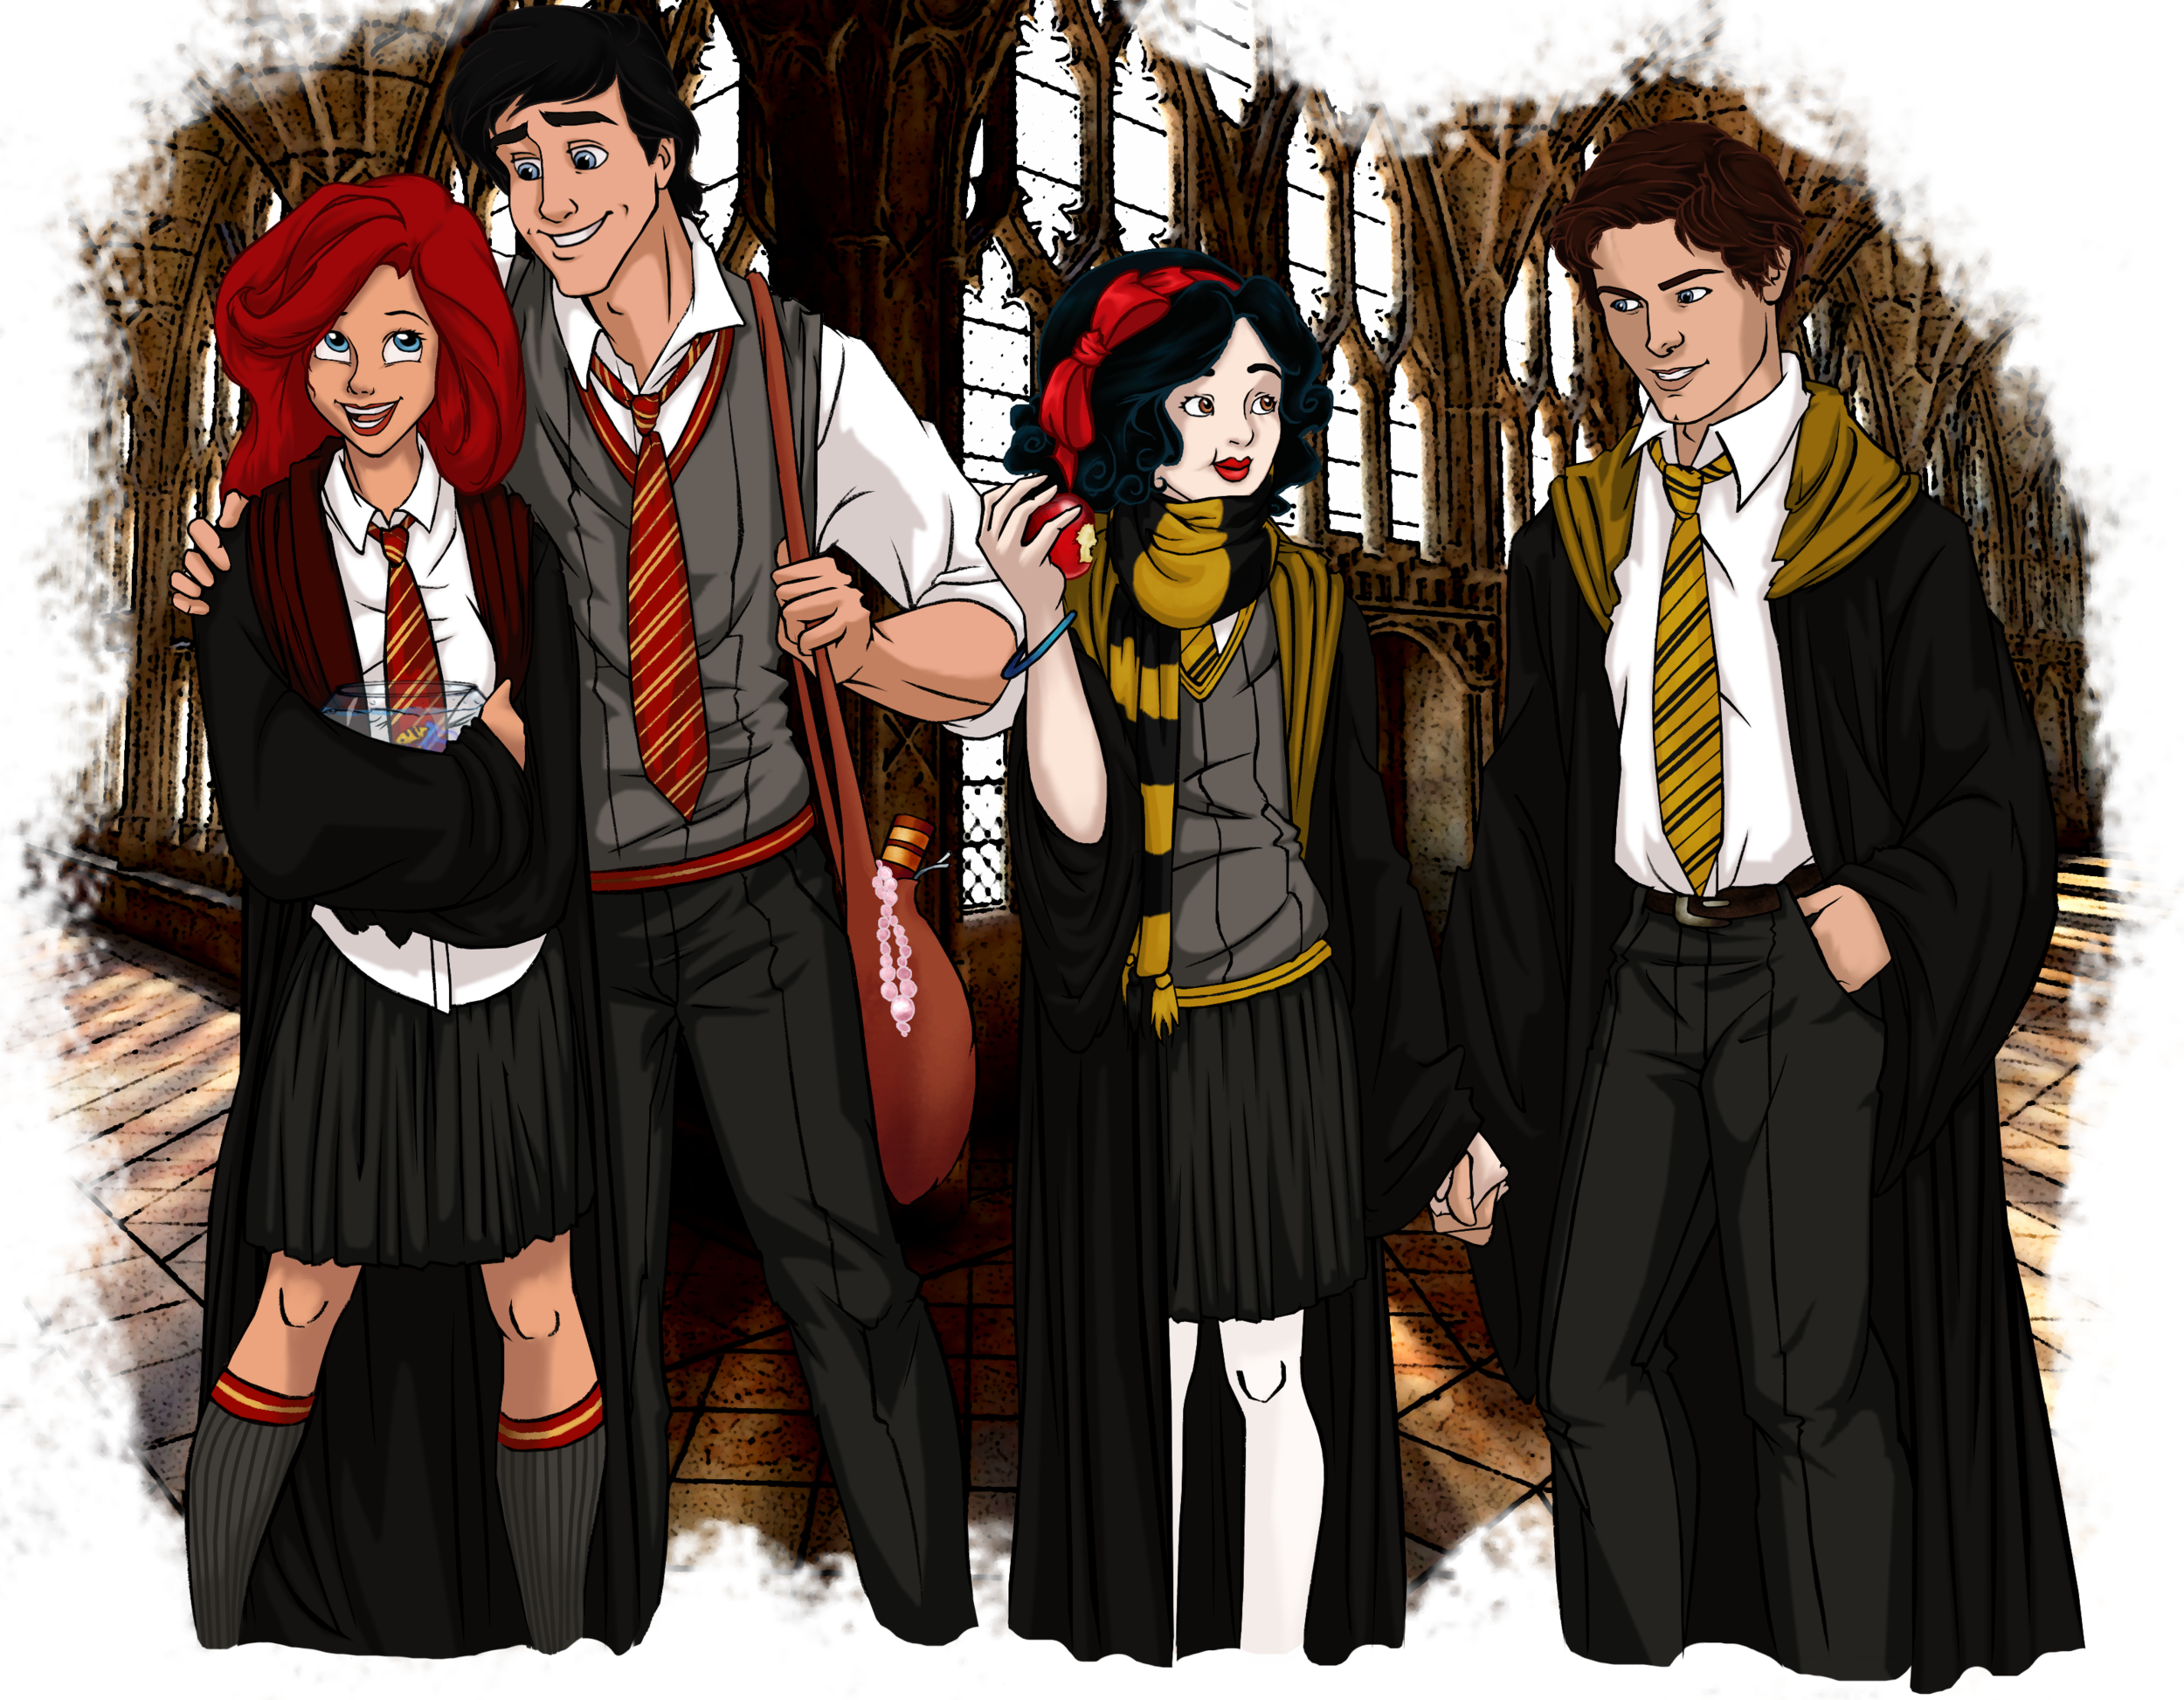 Ariel, Prince Eric, Snow White and Prince Florian